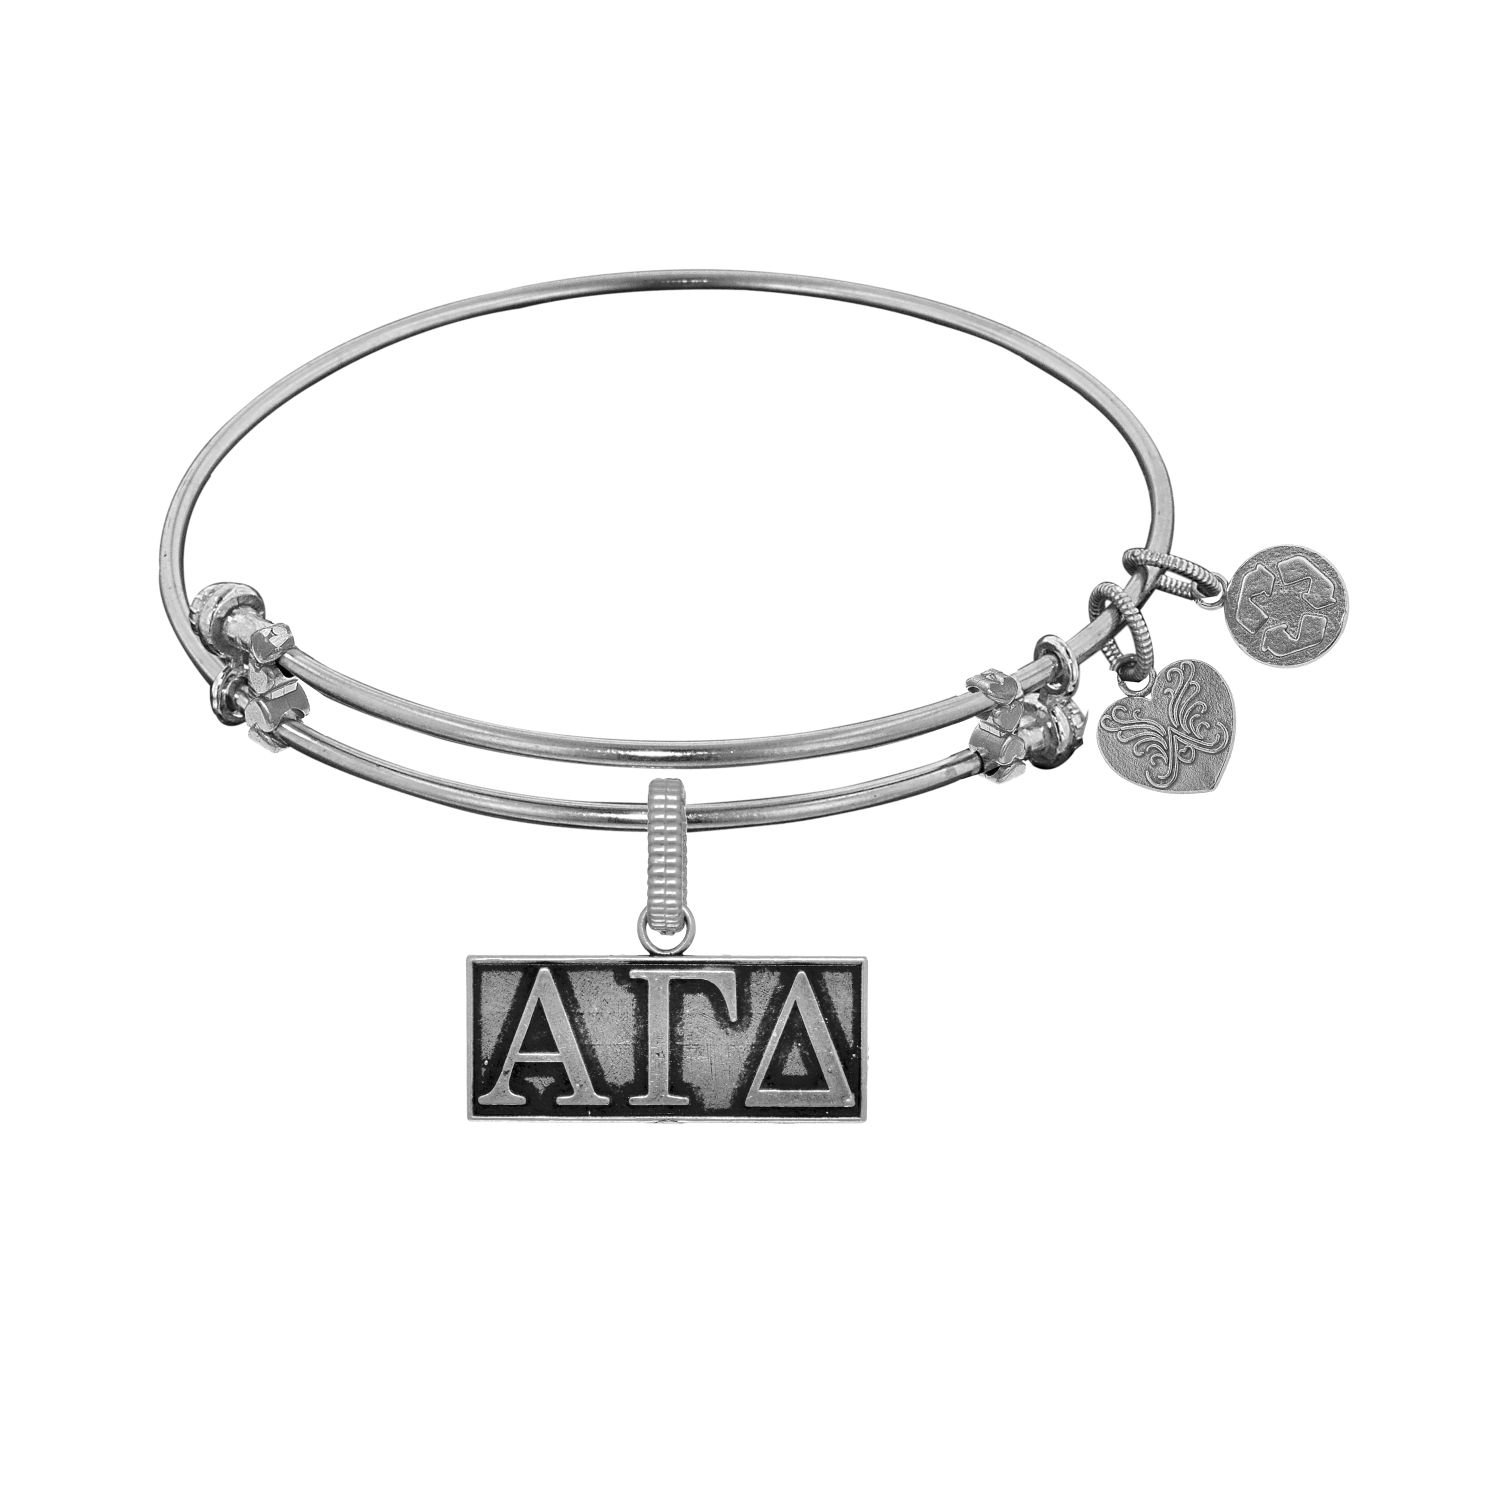 Angelica jewelry Collection Alpha Gamma Delta Brass with White Finish bracelet